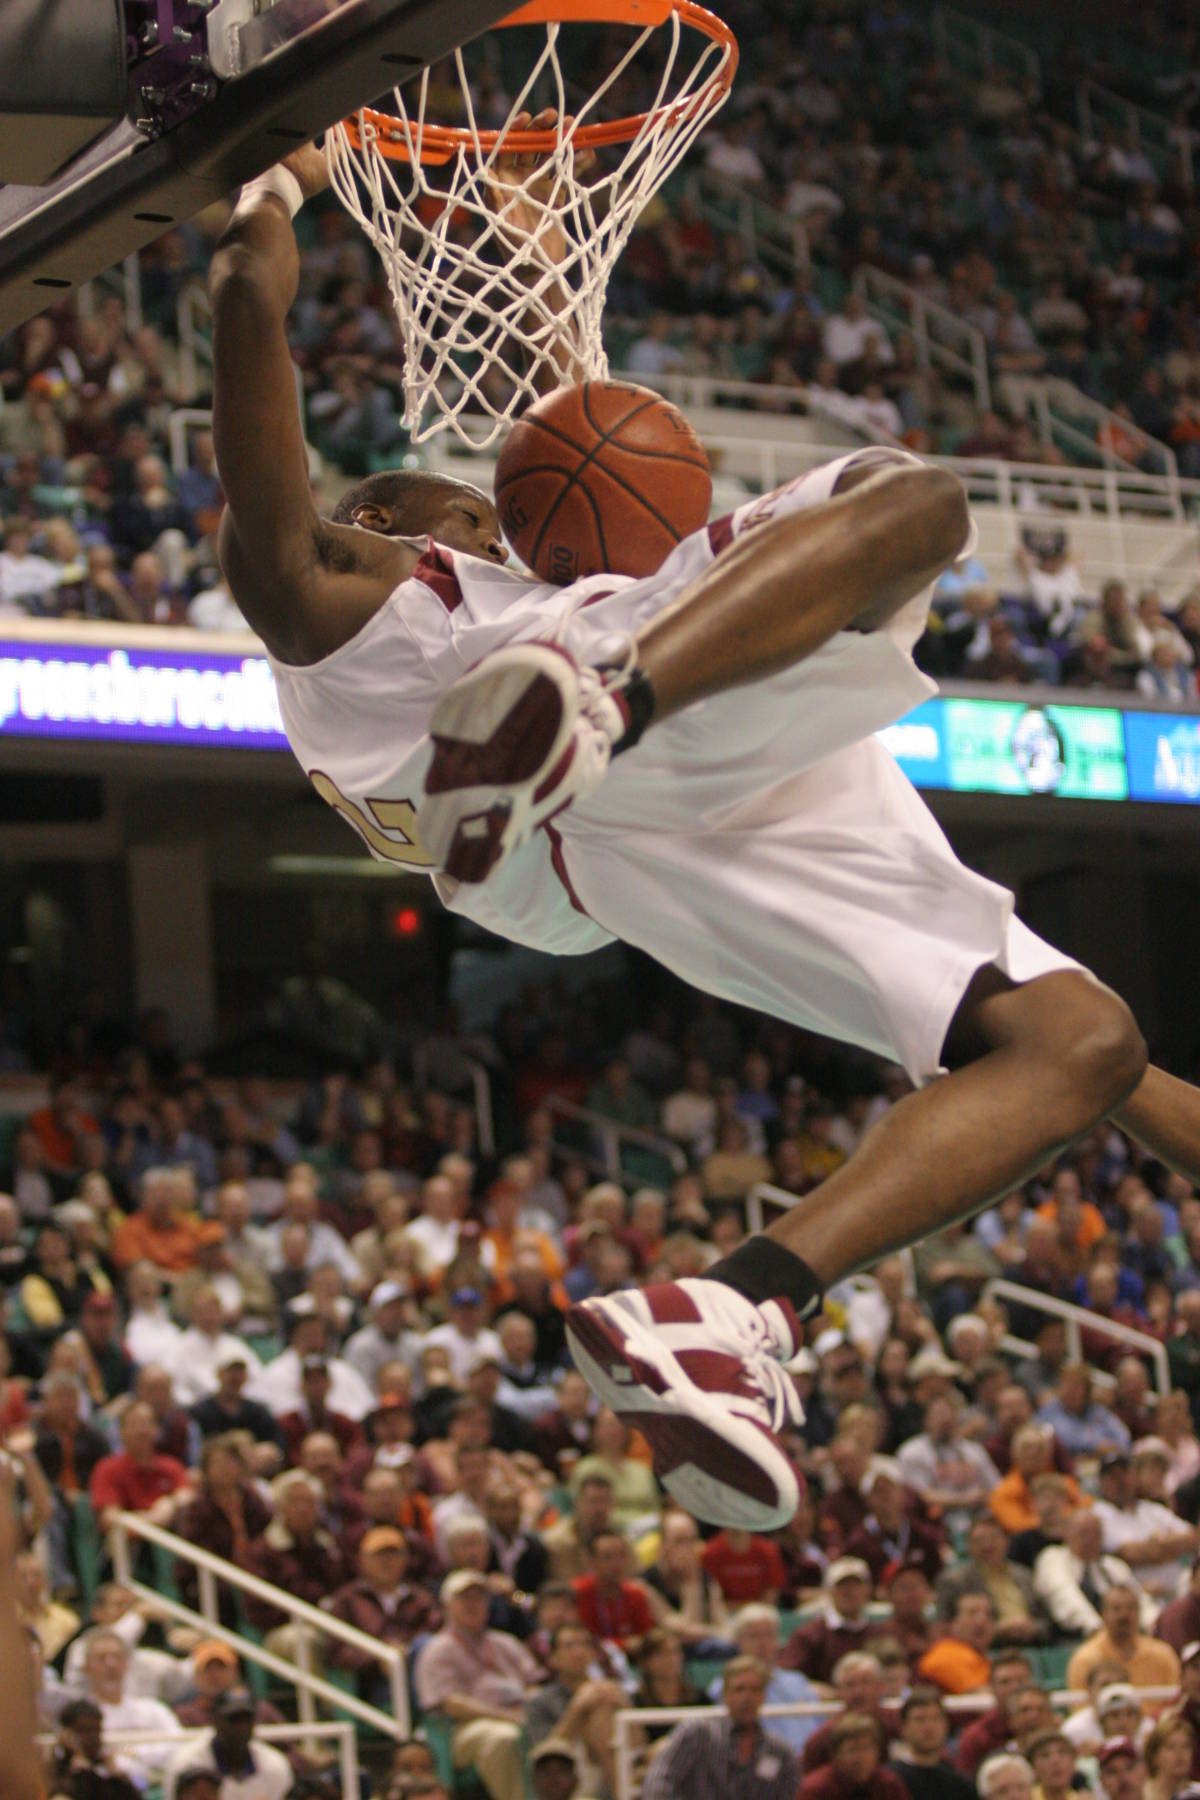 October 3, 2006: Seminole senior basketball player Al Thornton has been named a#$%^pre-season All-American by Athlon Magazine and Blue Ribbon Yearbook.